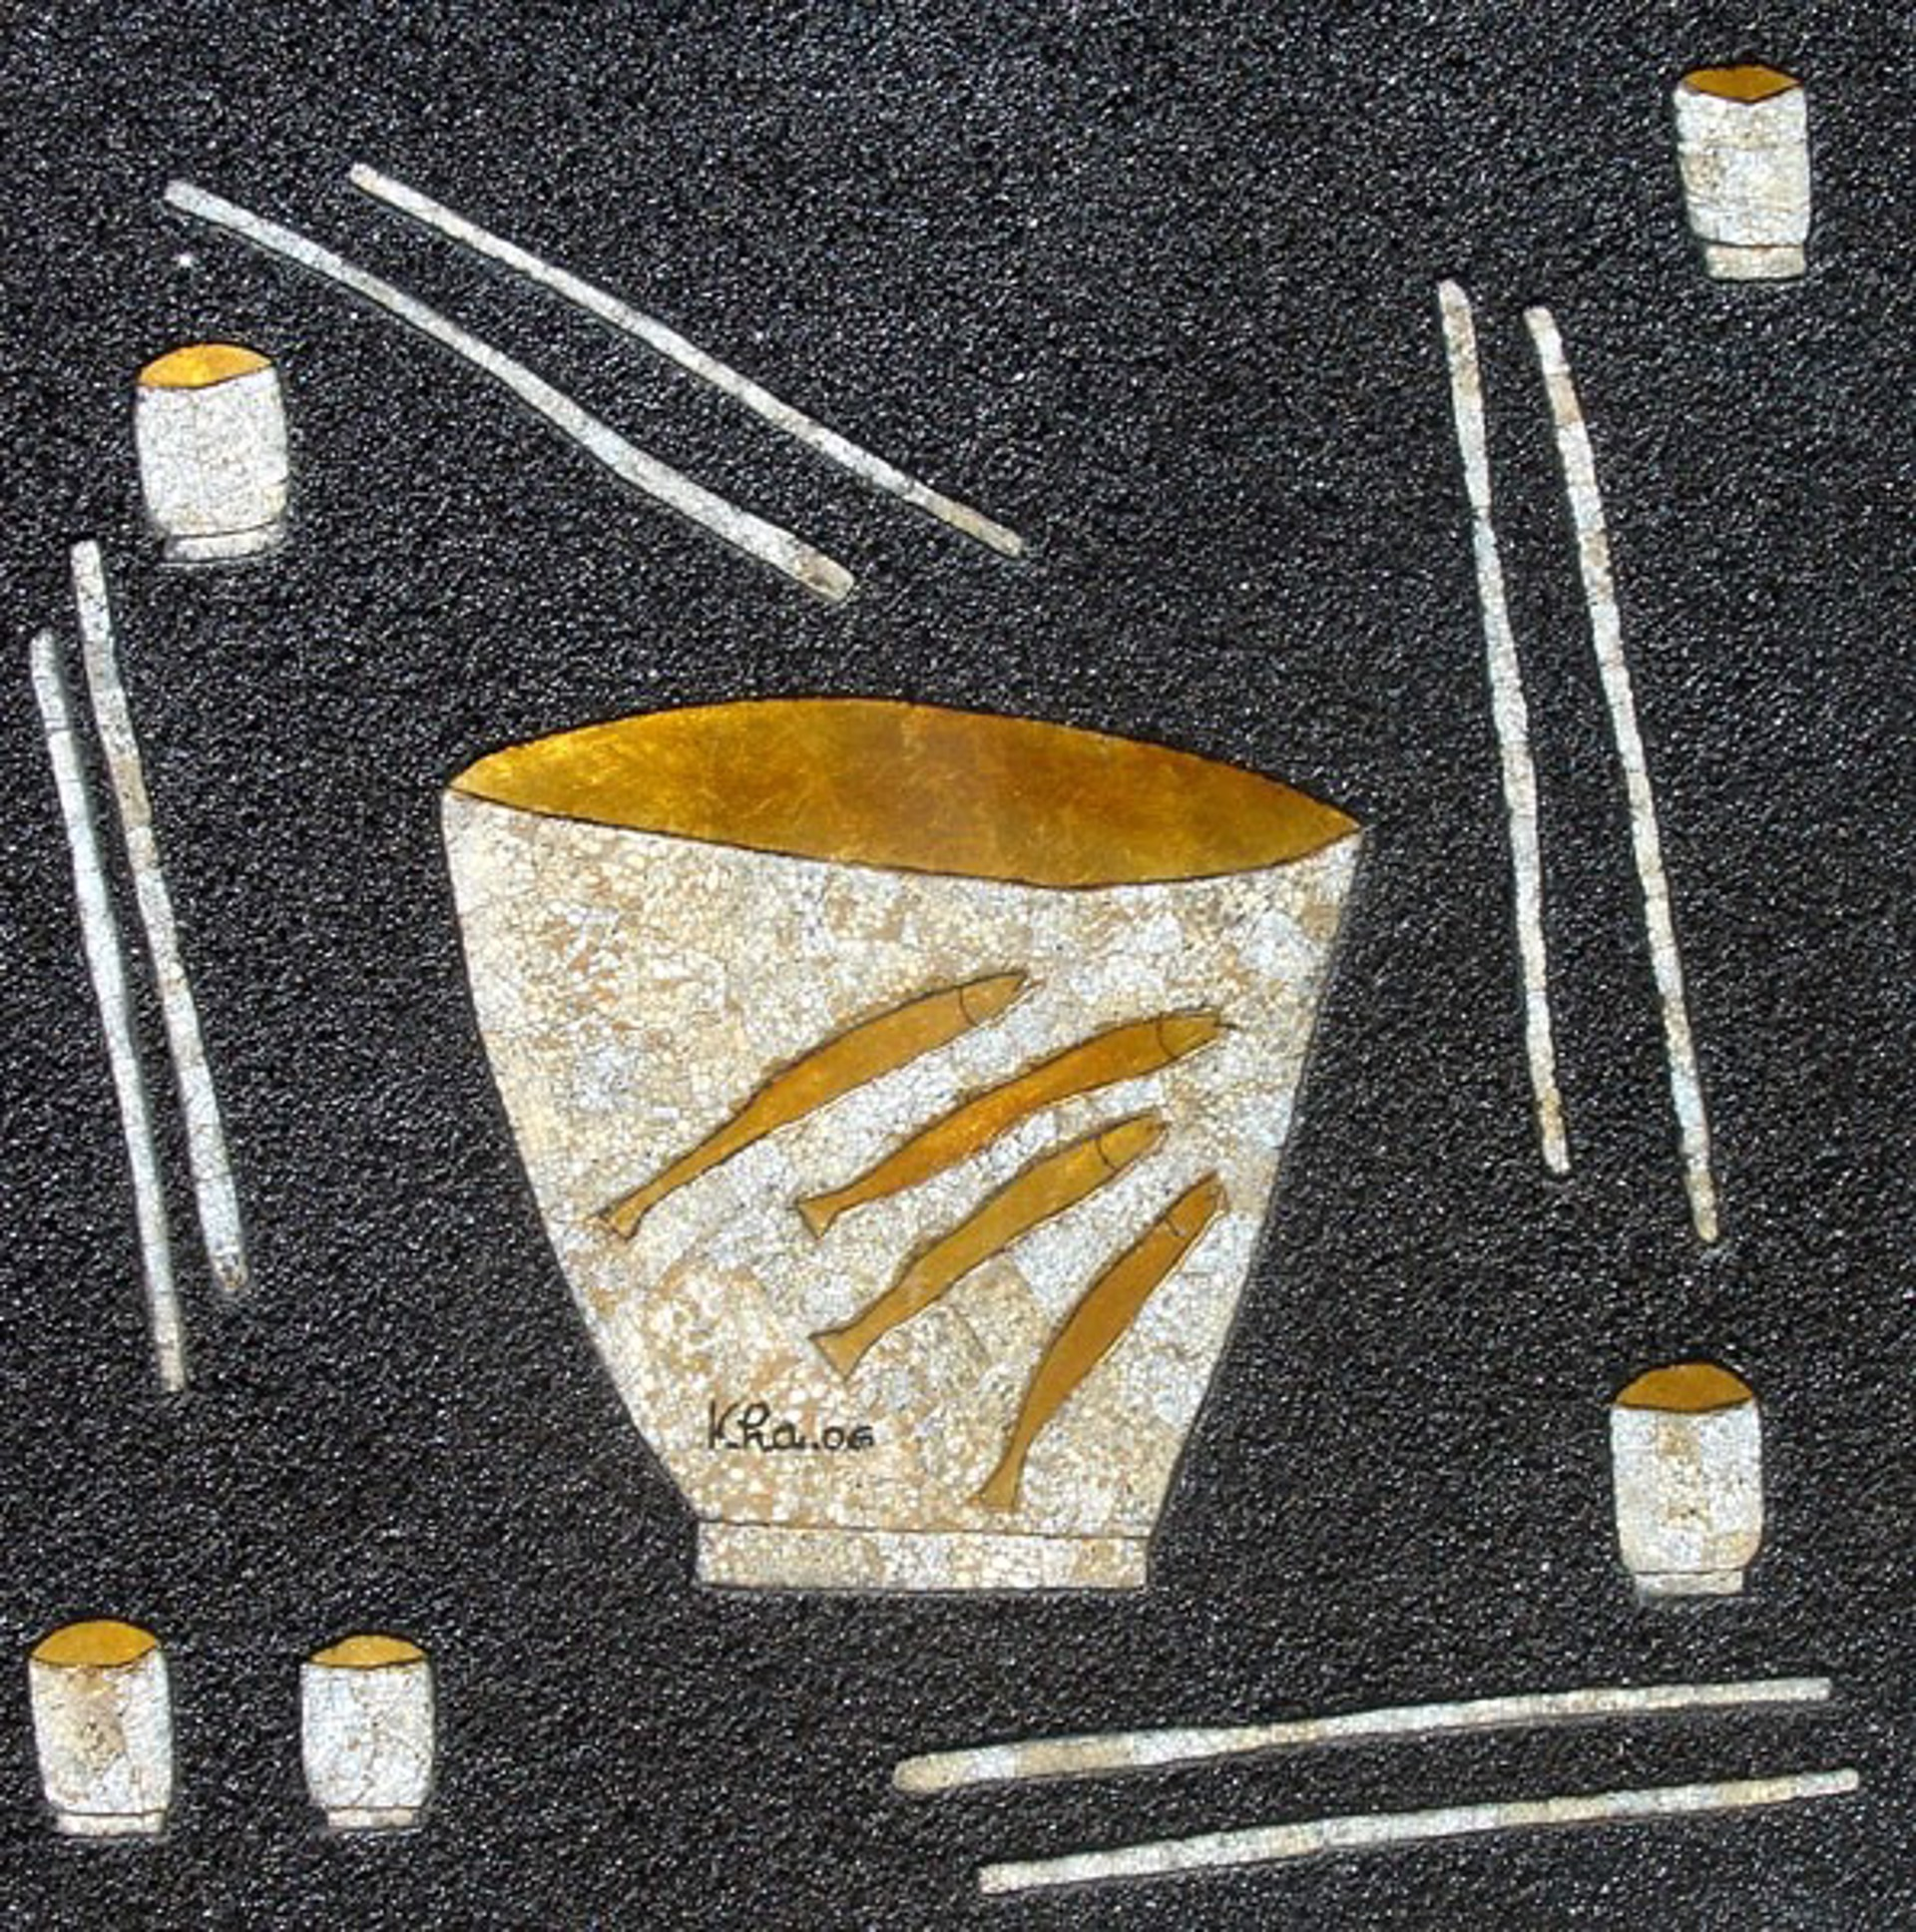 Common Bowl III by Bui Cong Khanh